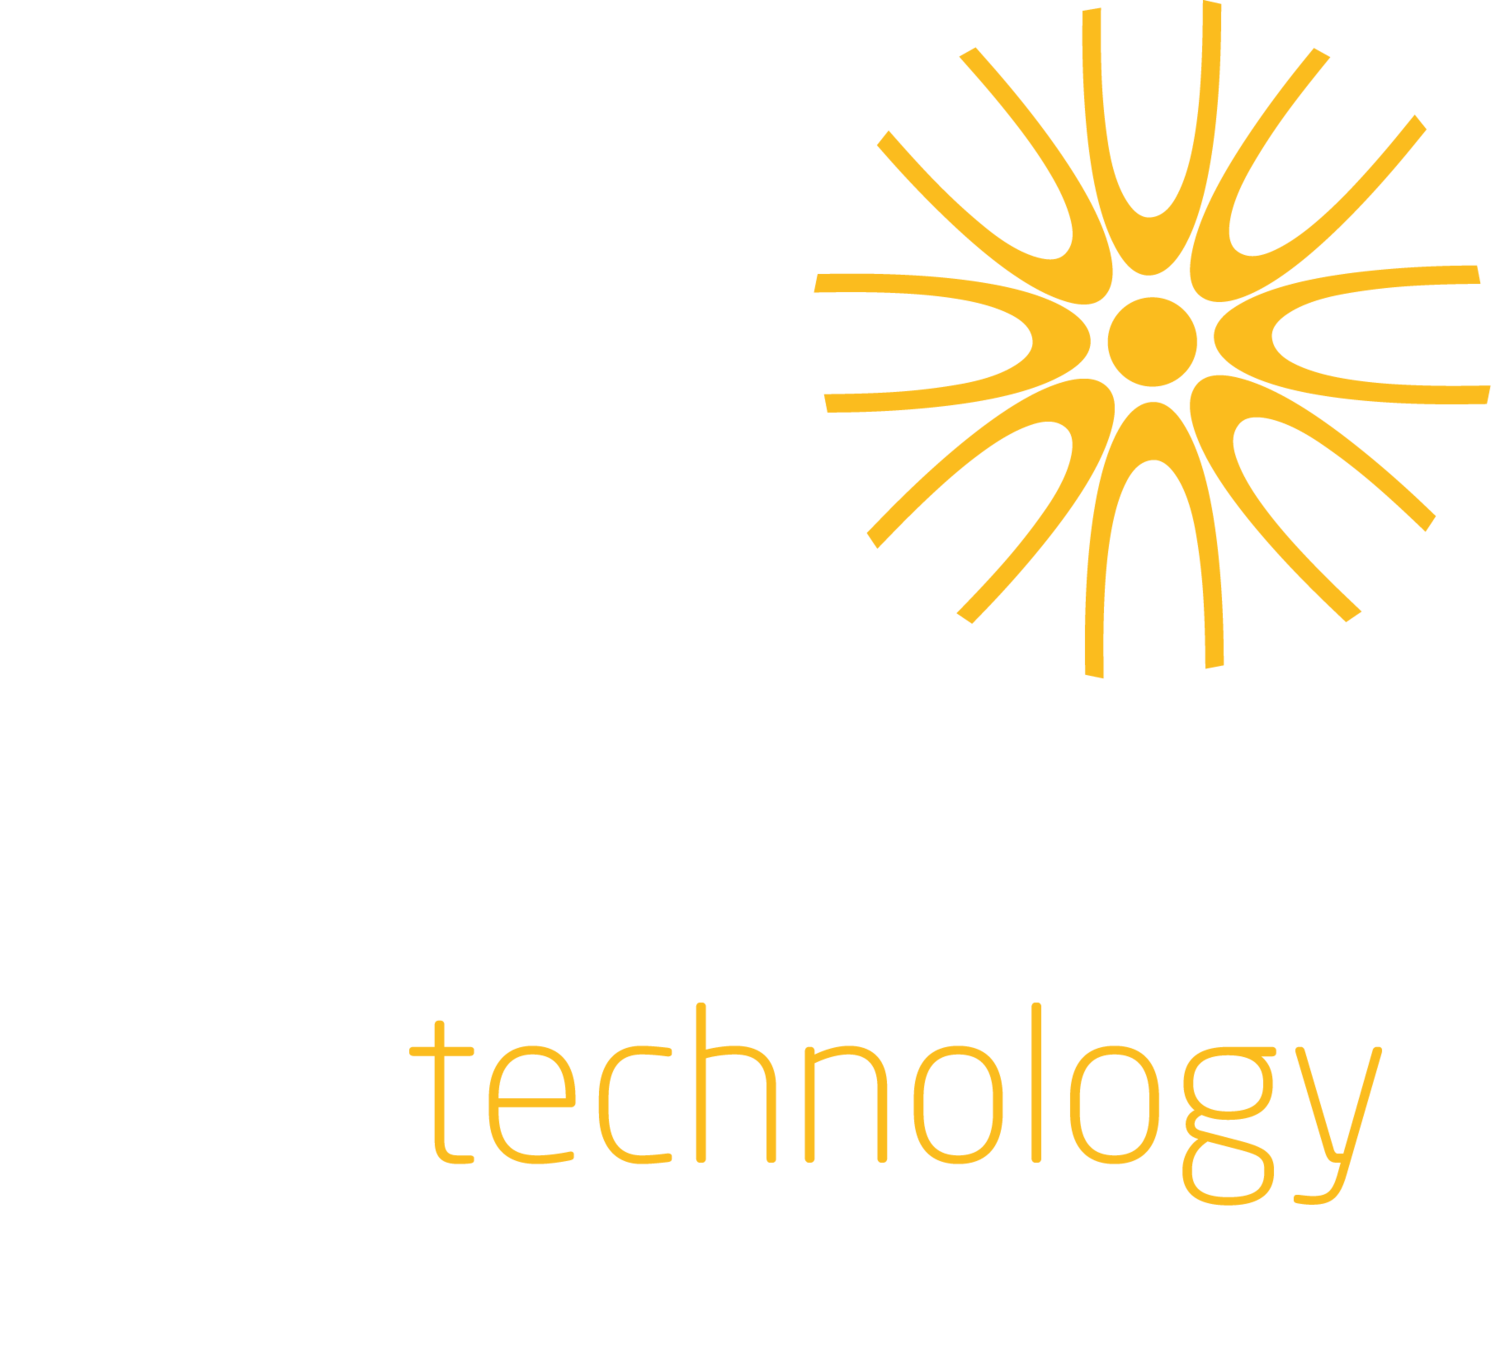 Yellow Technology